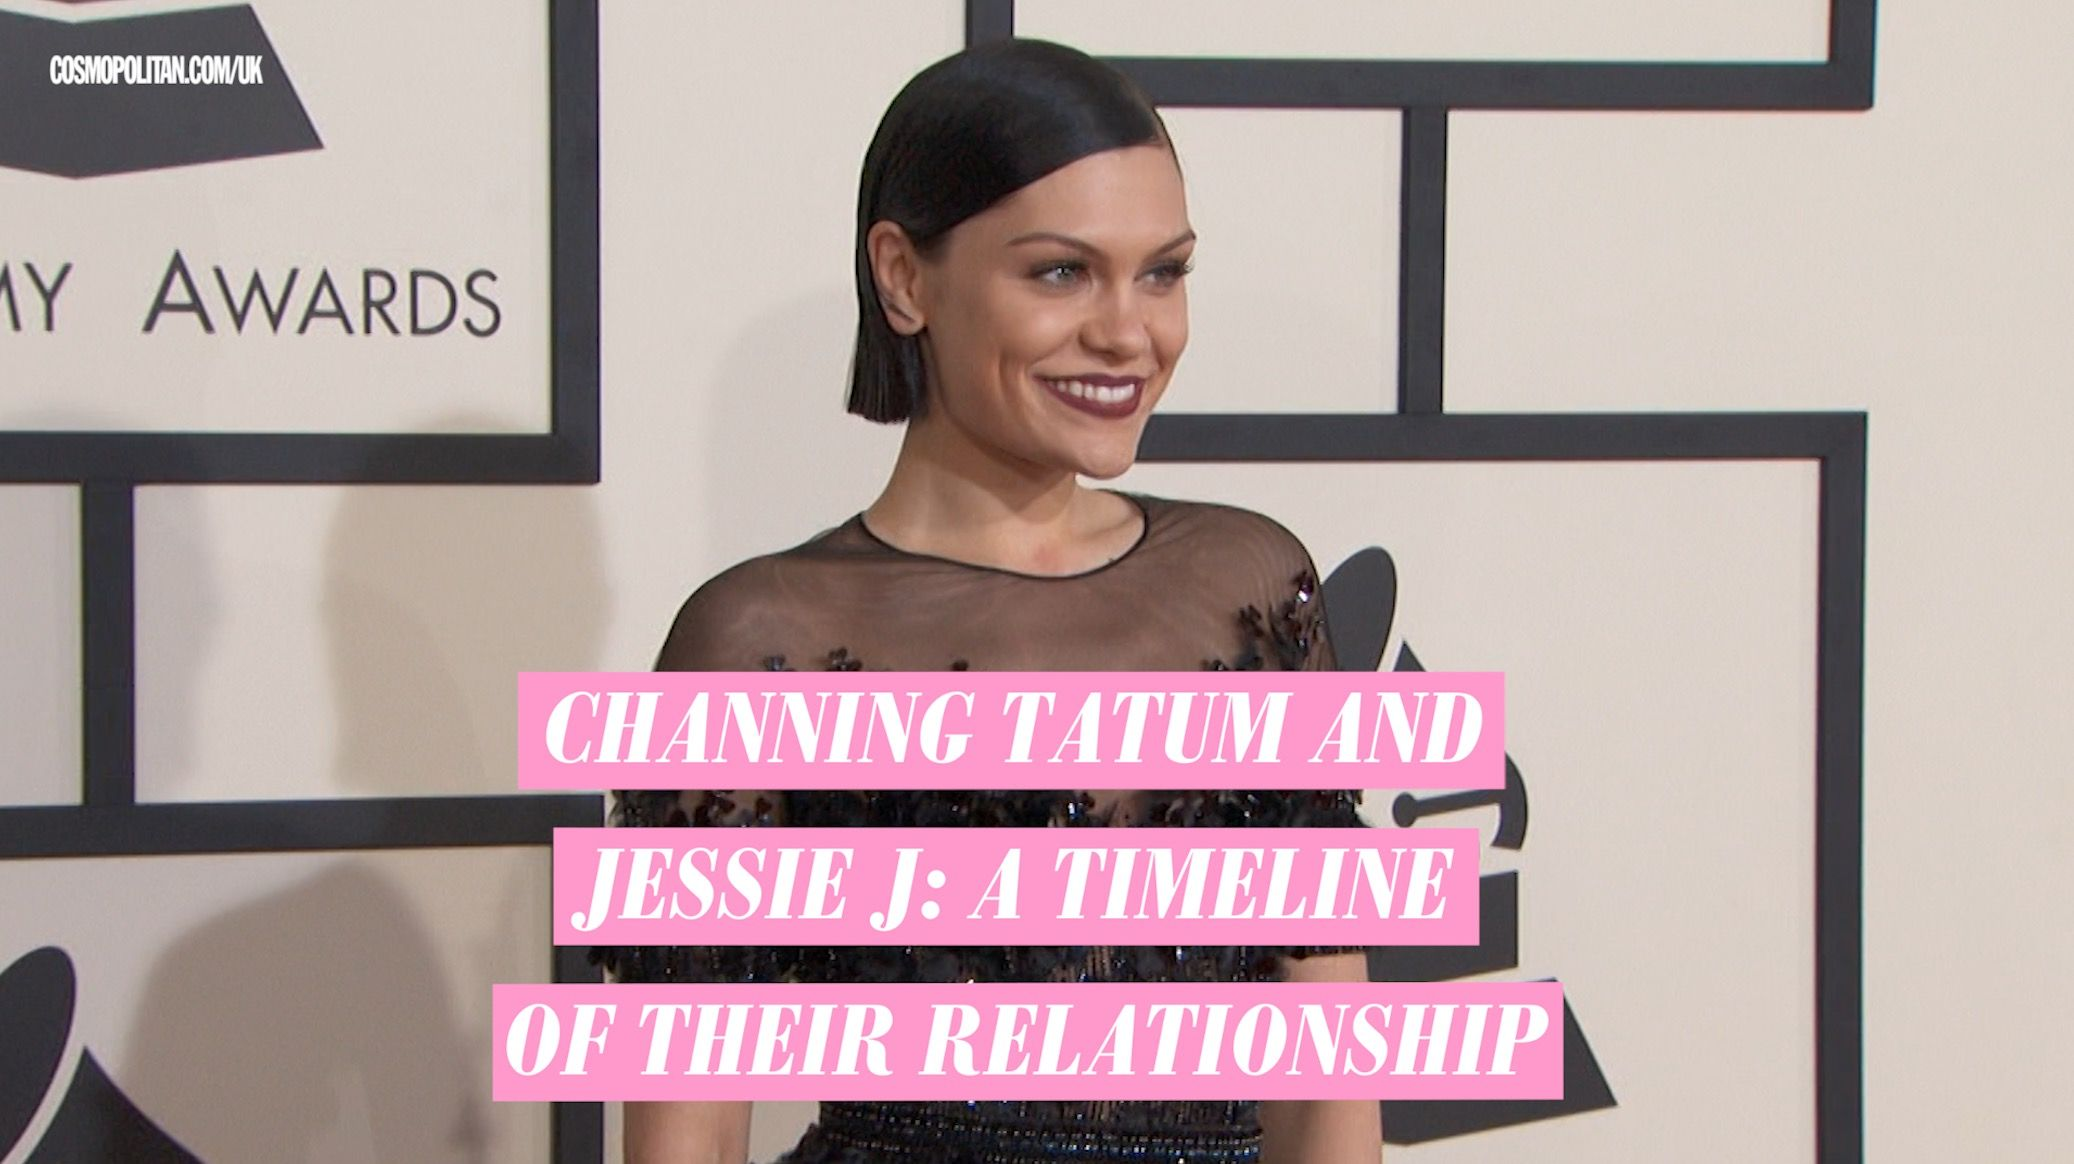 Channing Tatum and Jessie J Just Made Their Red Carpet Debut as a Couple